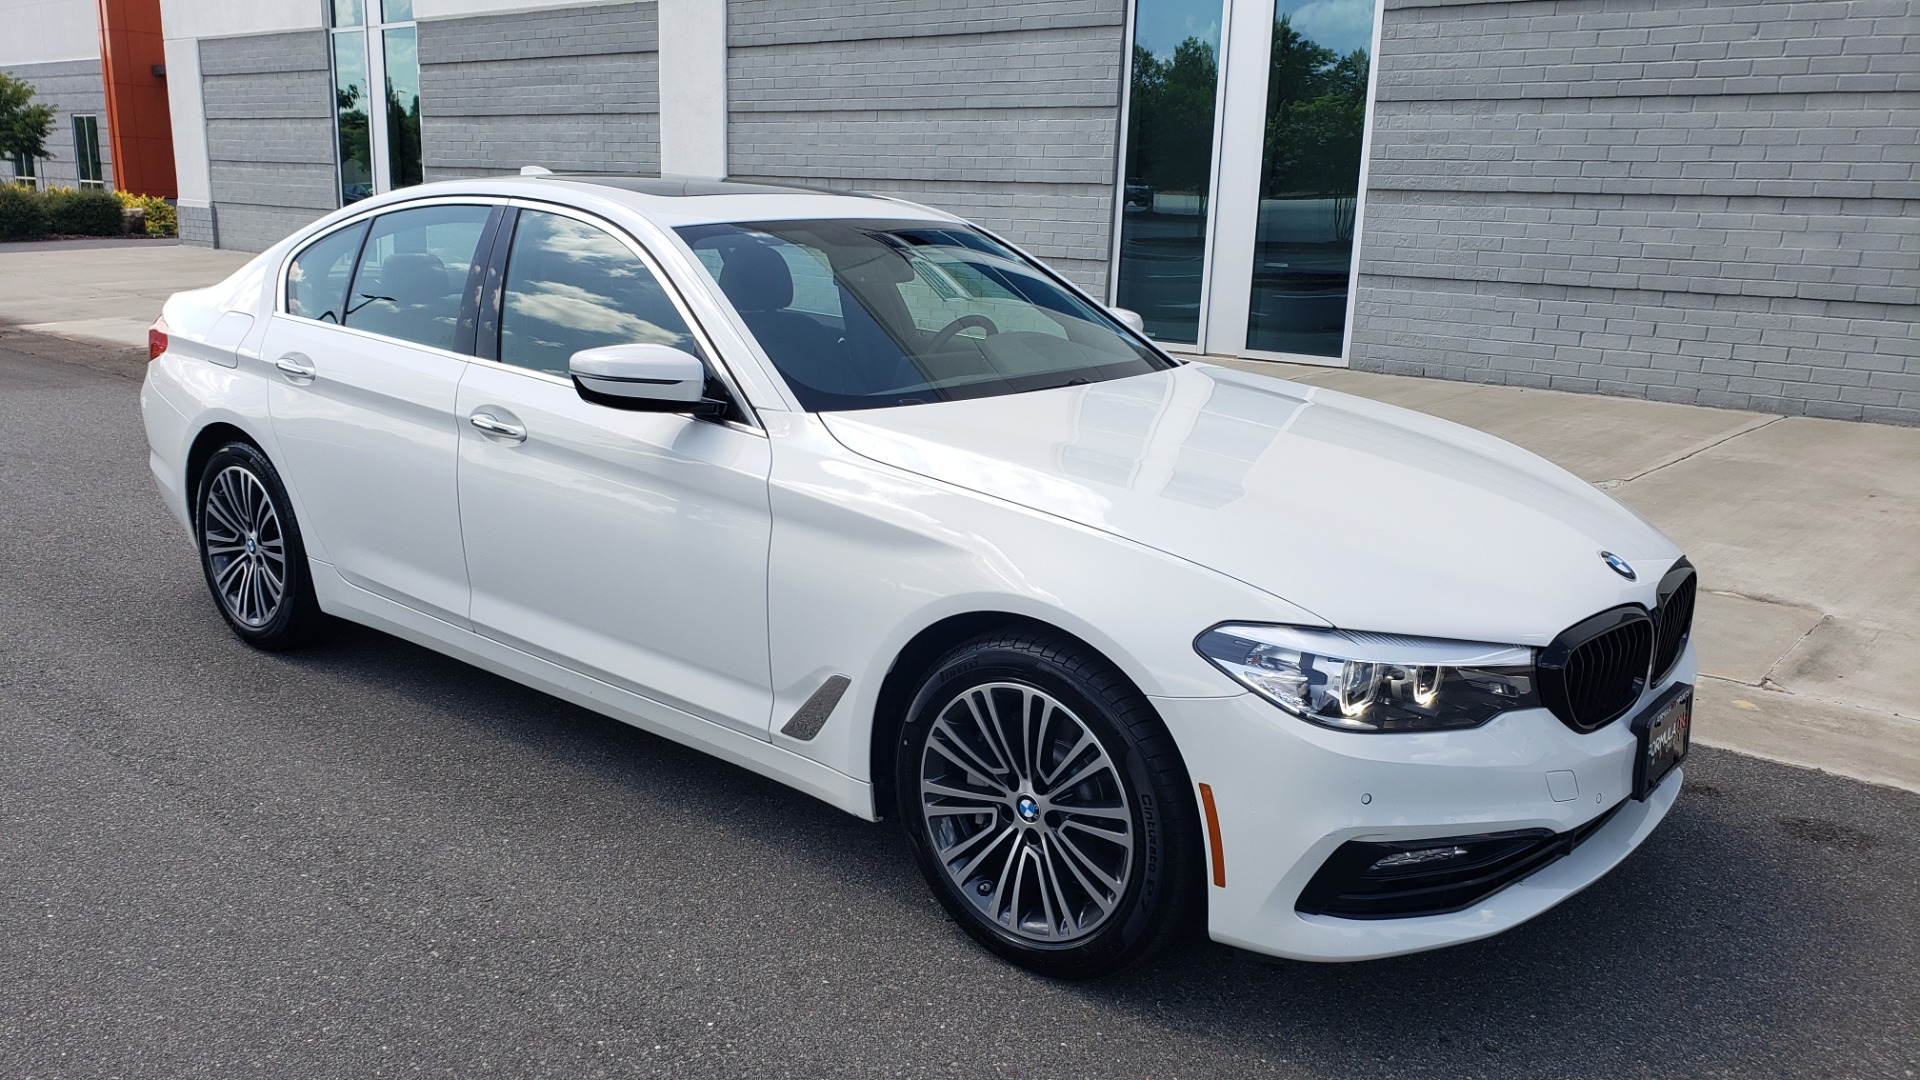 Used 2018 BMW 5 SERIES 530I XDRIVE PREMIUM / PARK ASST / NAV / SUNROOF / REARIEW for sale $37,795 at Formula Imports in Charlotte NC 28227 9